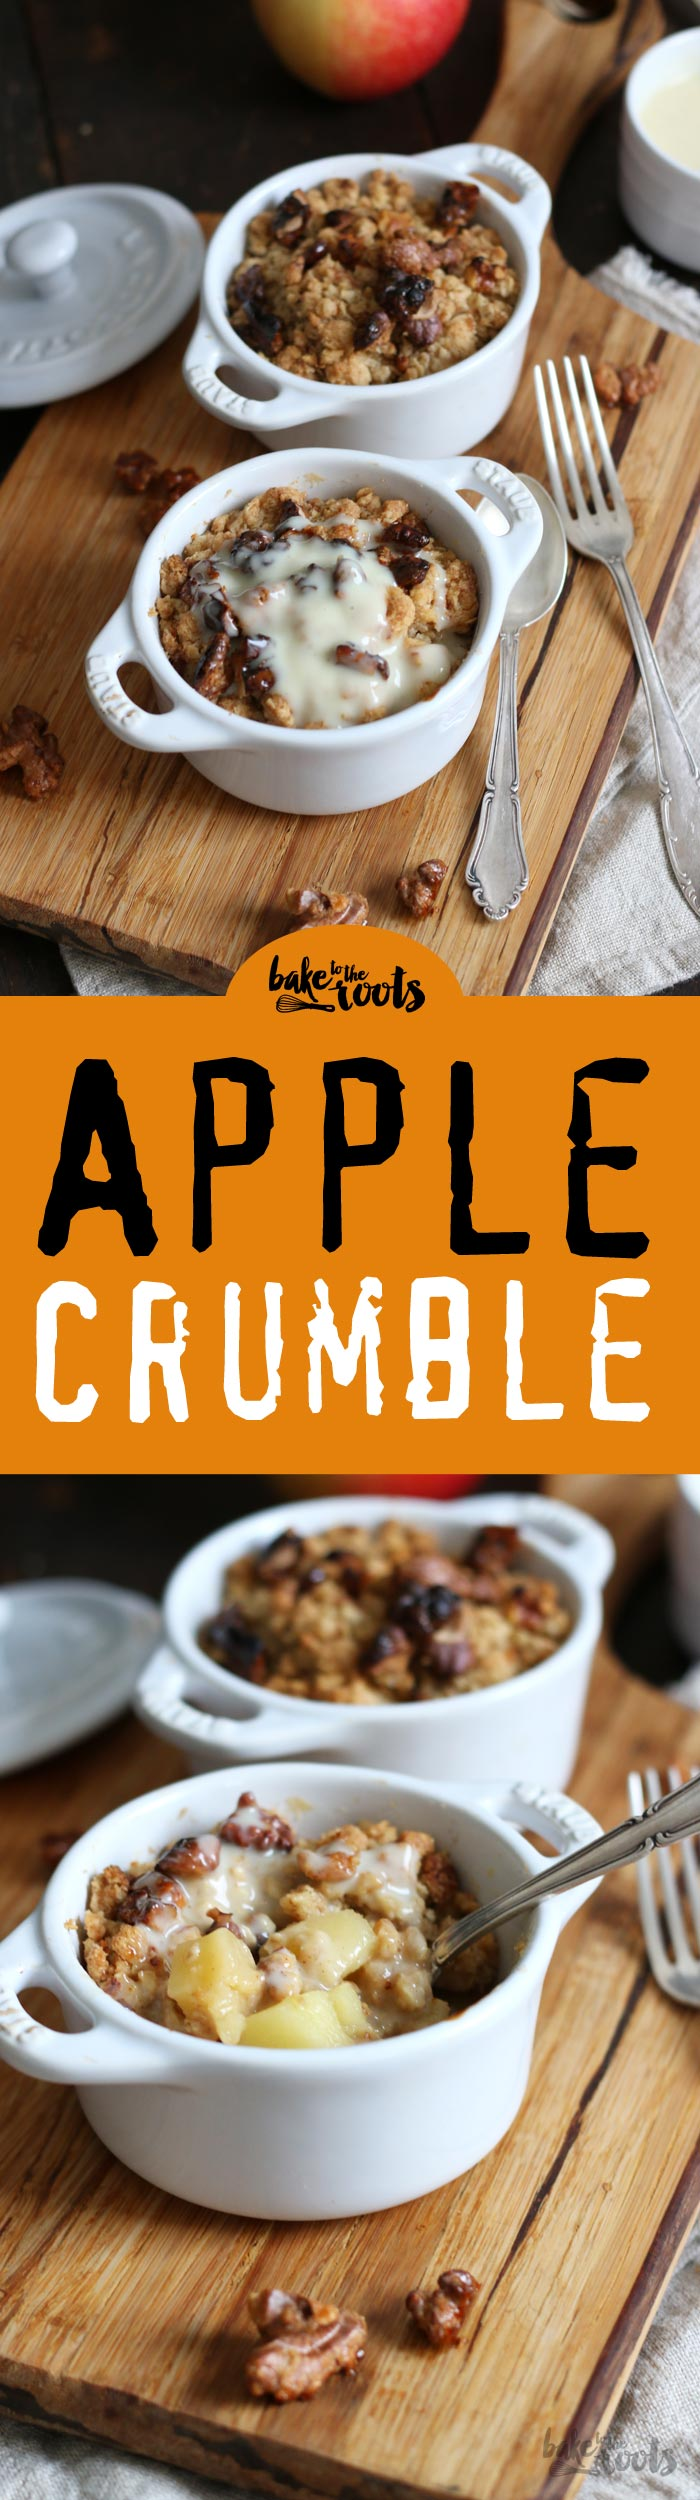 Delicious Apple Crumble with Maple Glazed Walnuts | Bake to the roots